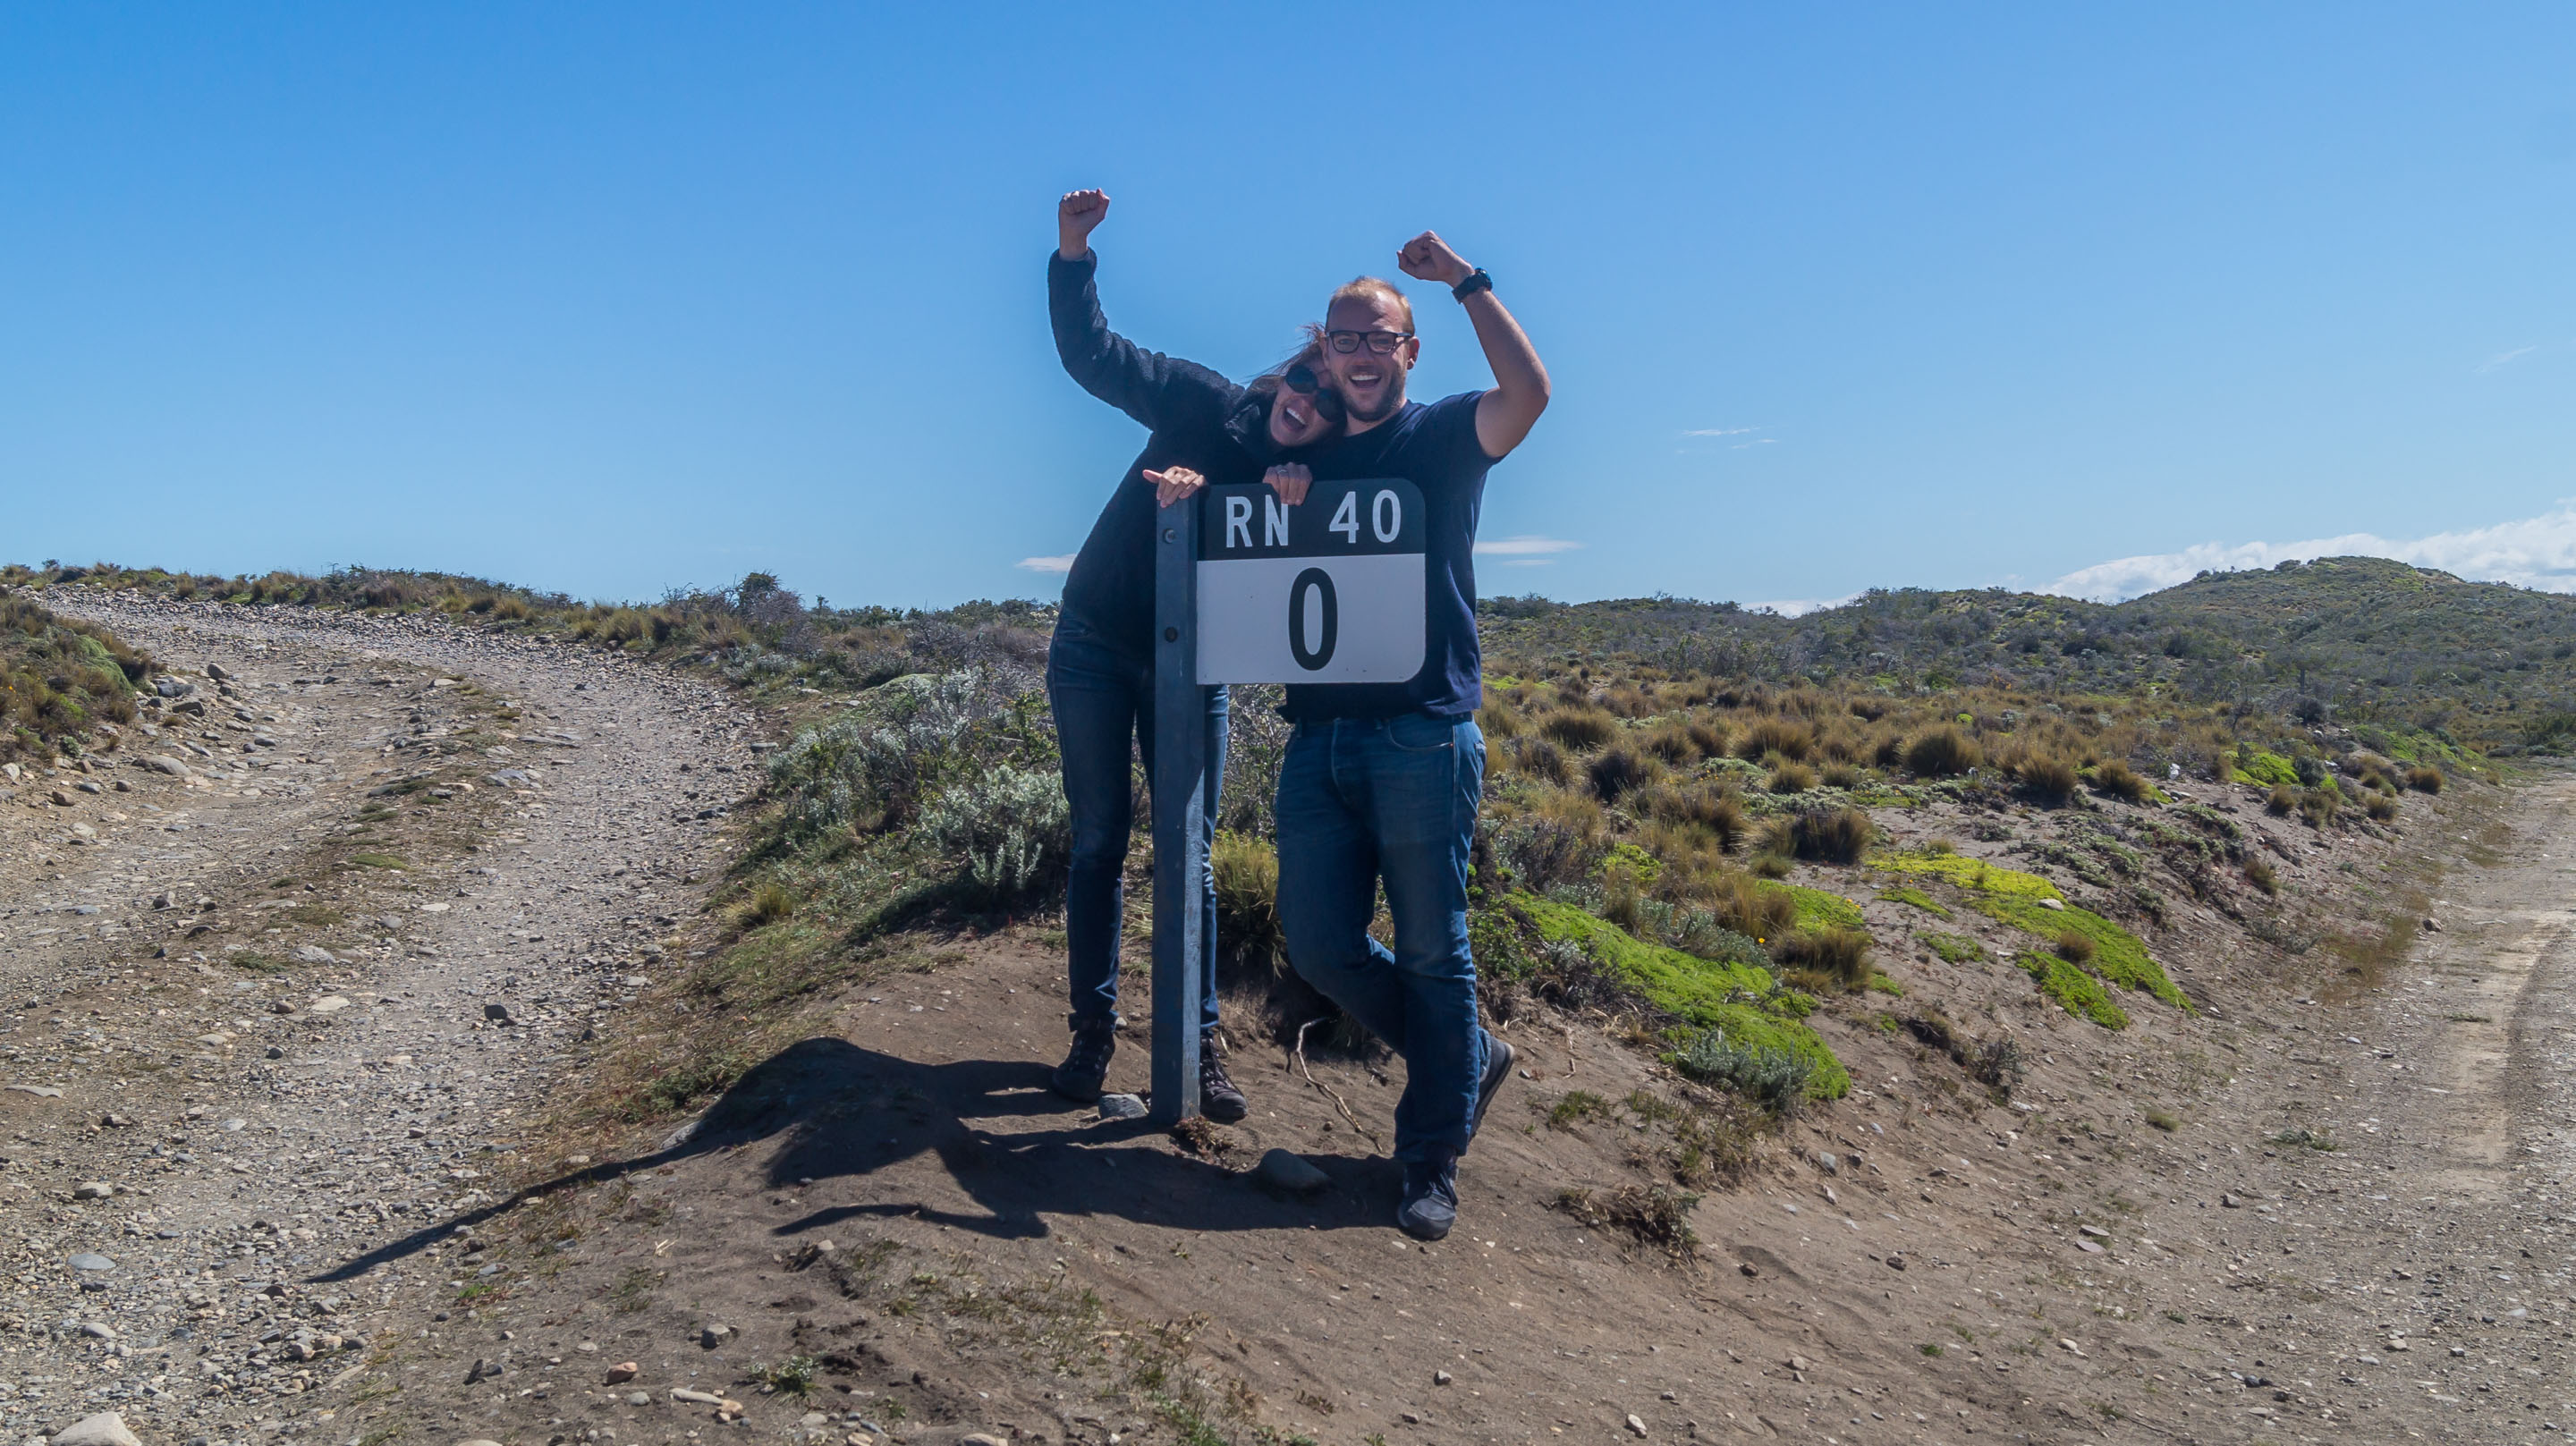 Ruta40-End-Beginning-Cabo-Virgenes-5